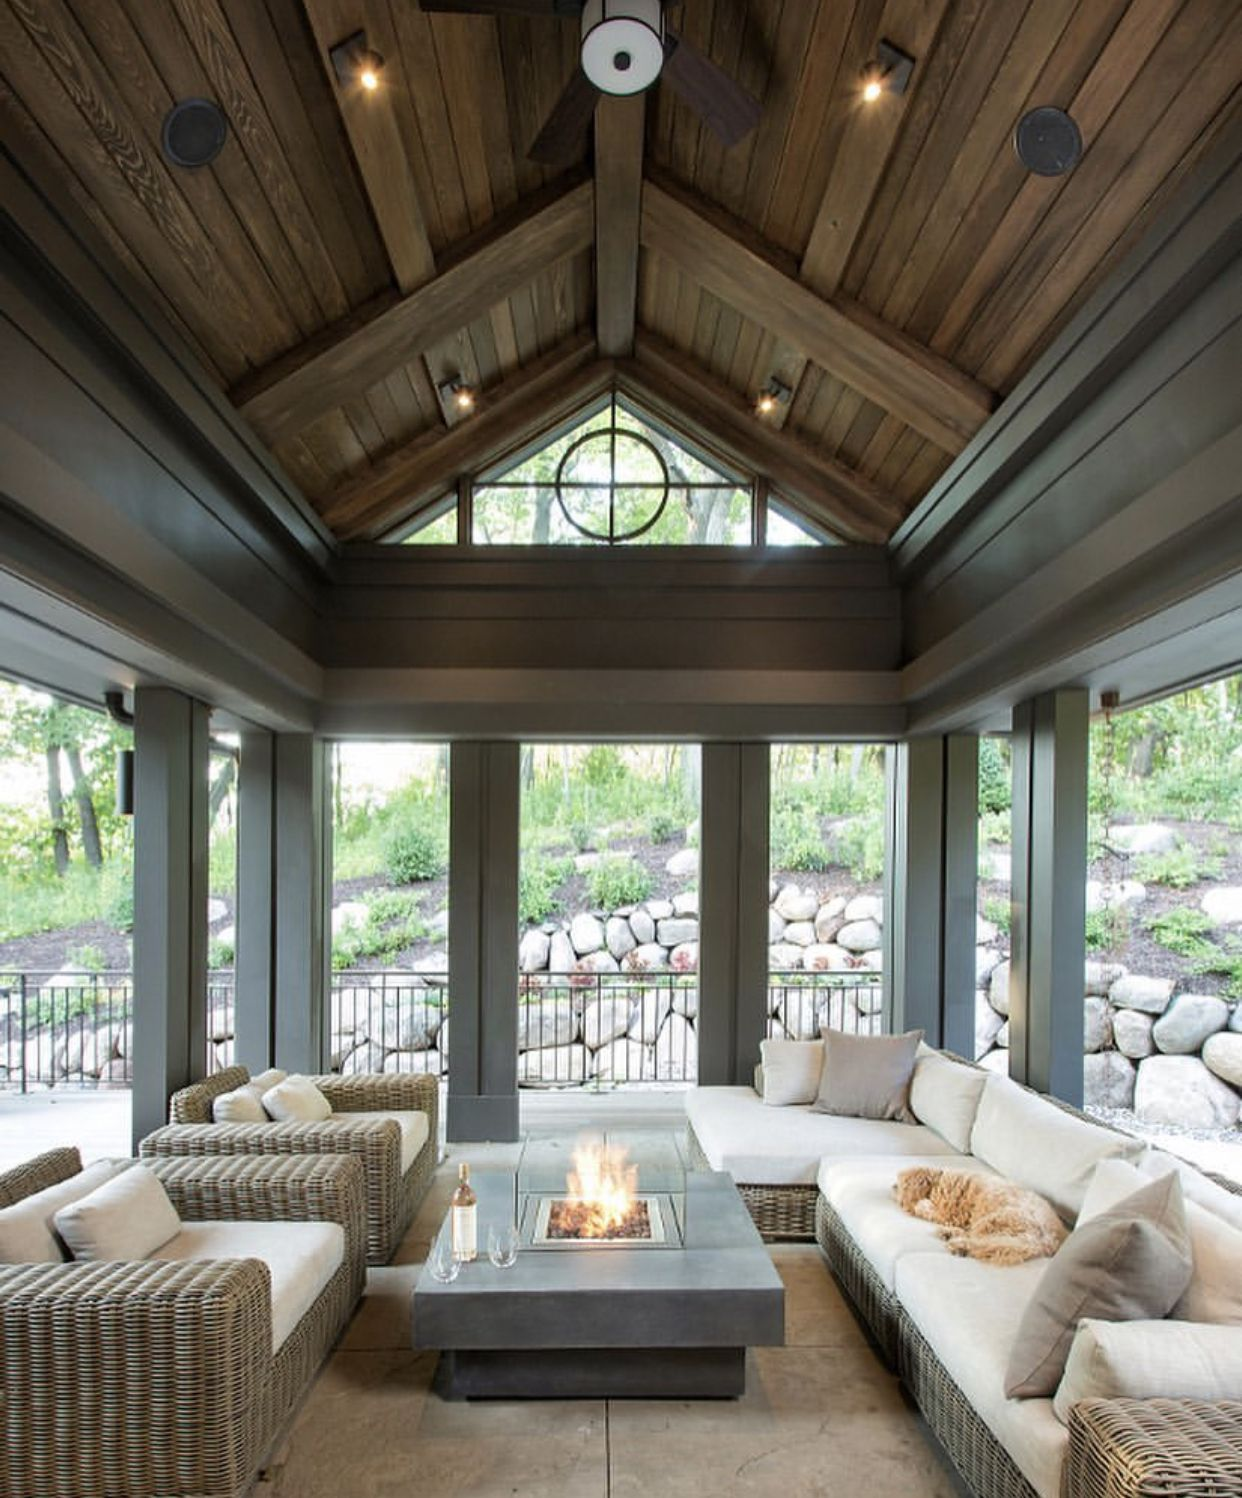 Outdoor Sitting Area Extension Home Porch Design My Dream Home